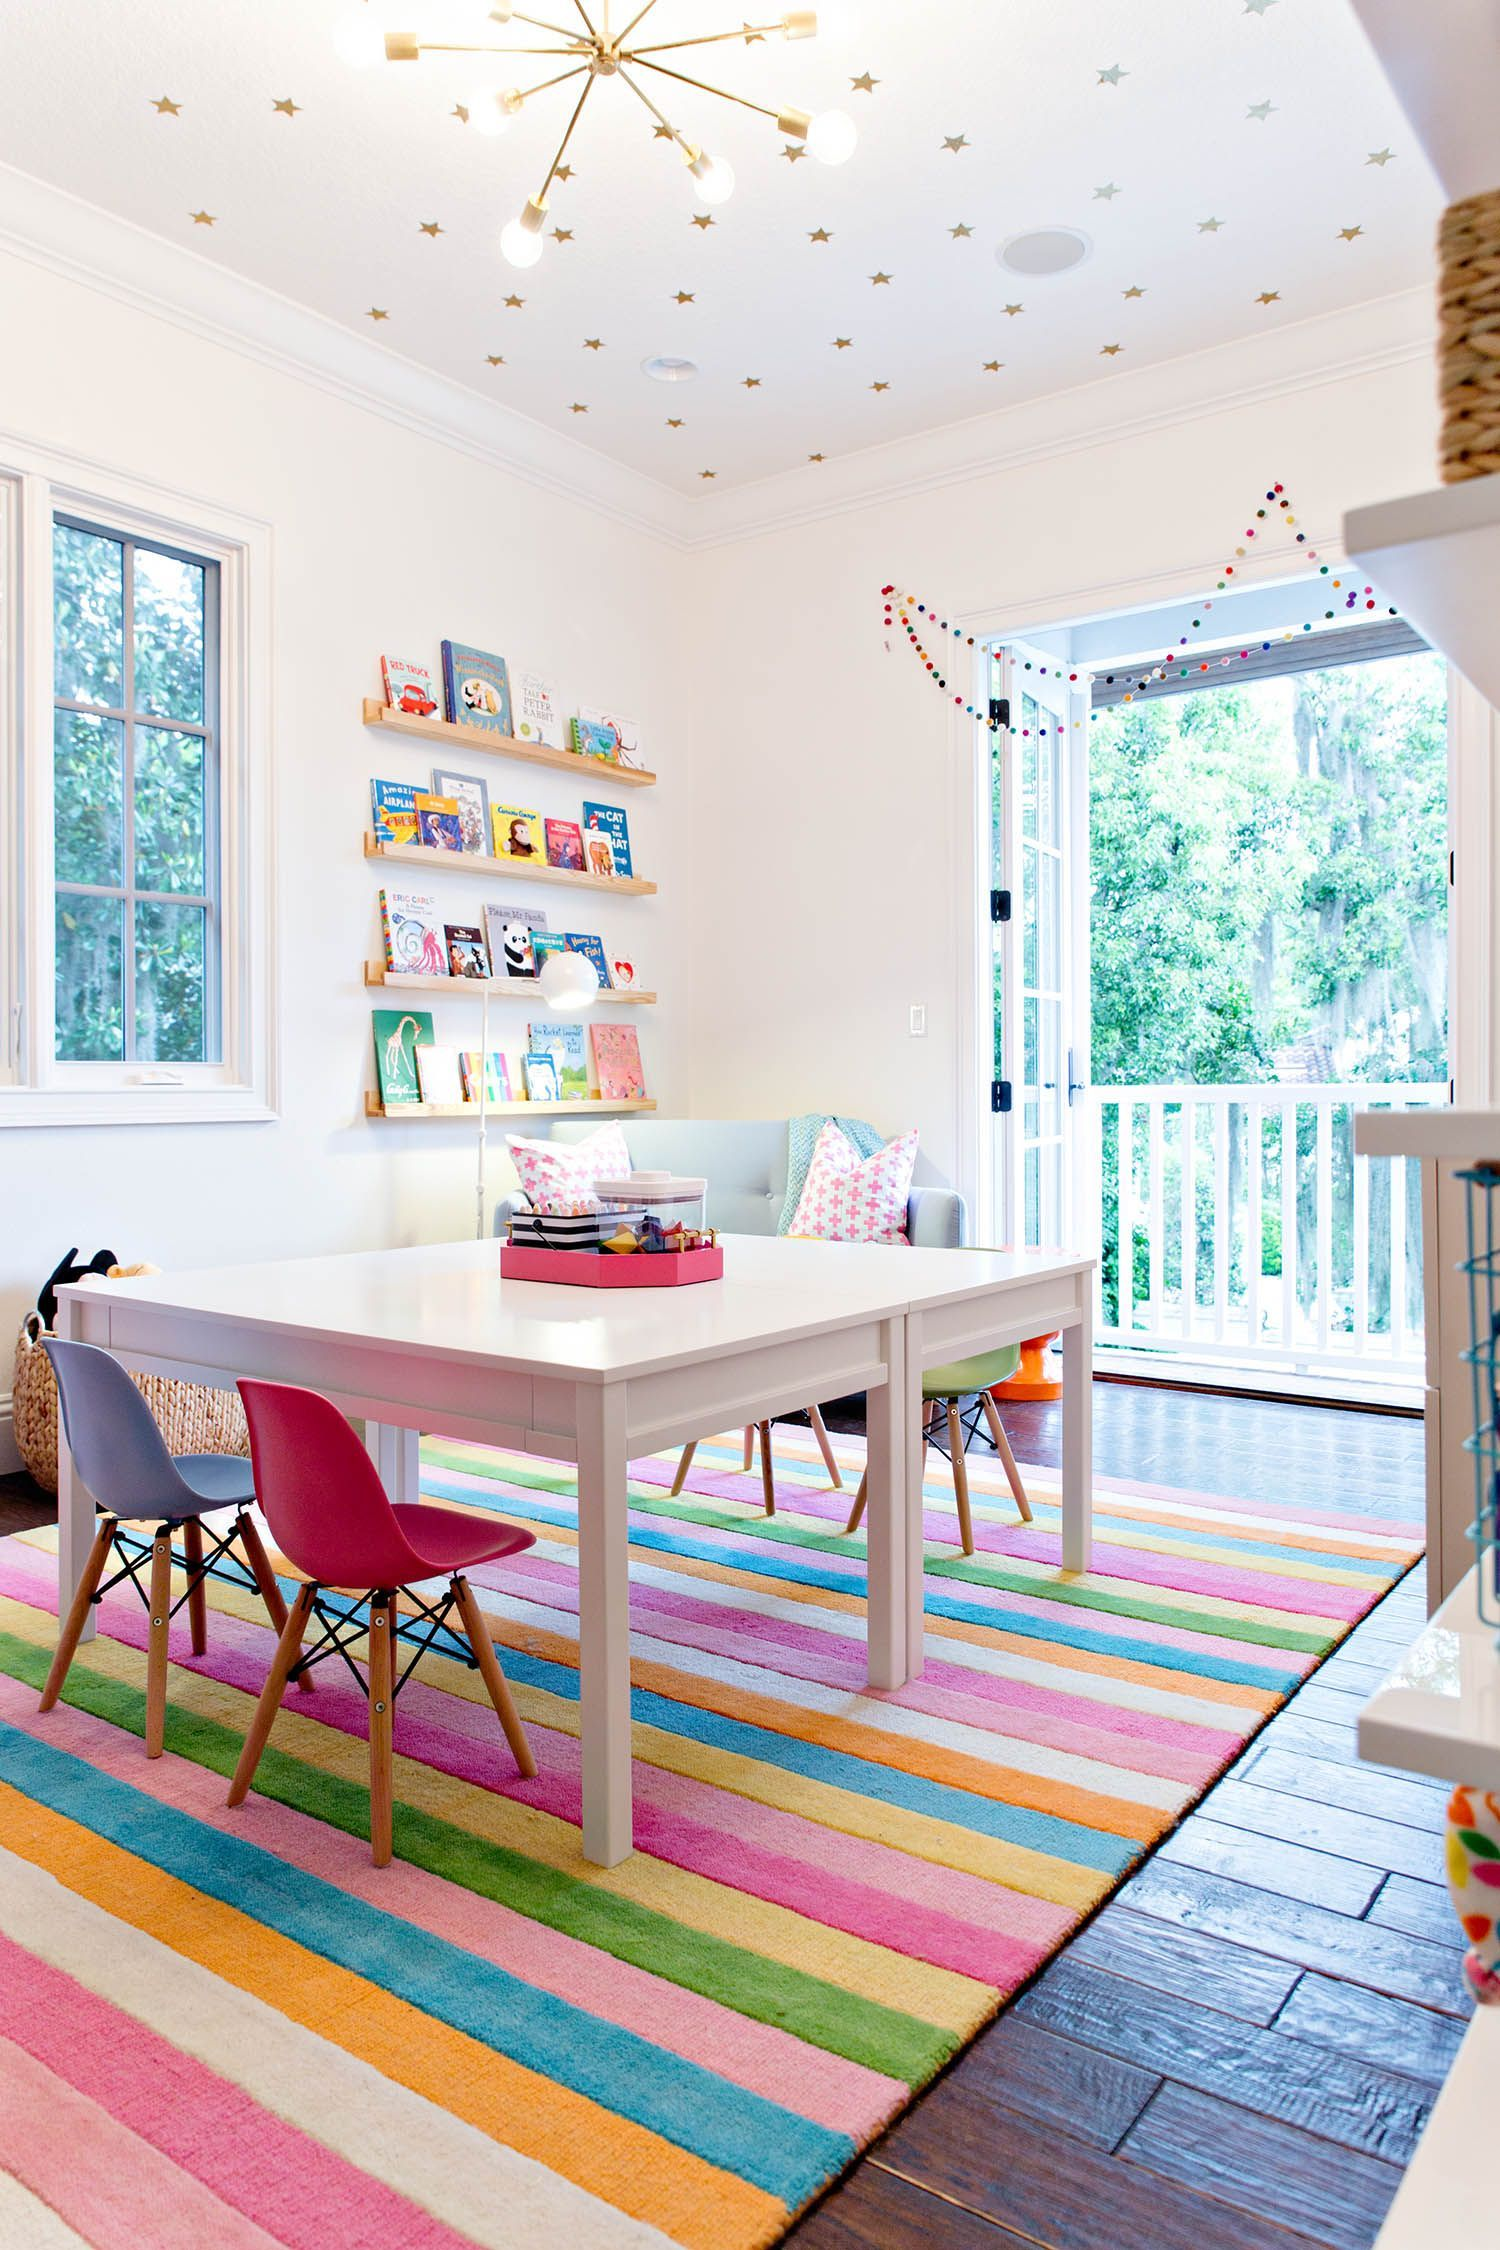 How To Give Your Kids Bedroom Exactly The Lighting You Want Www Lightingstores Eu Visit Our Blog For More Playroom Design Kid Room Decor Colorful Playroom